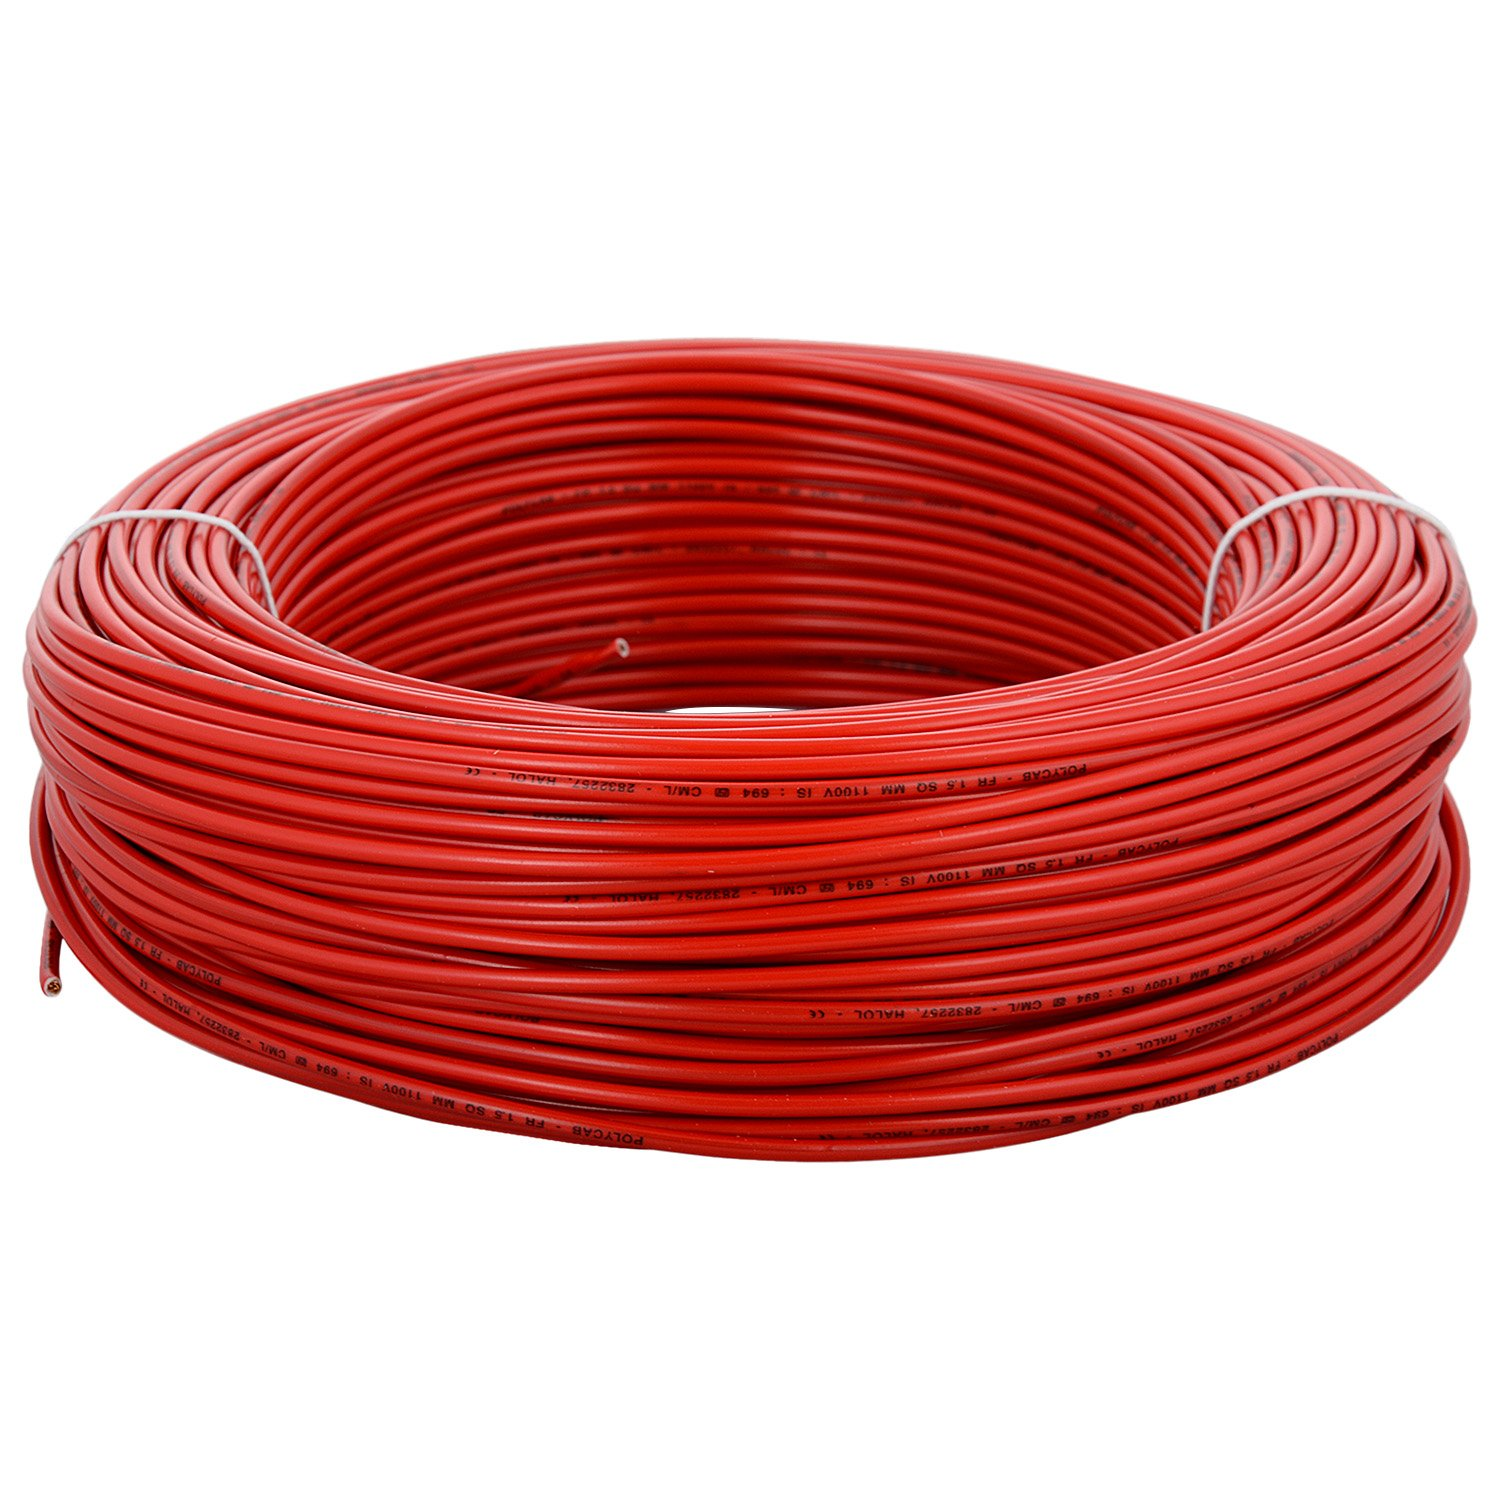 Cable buy electric cable 2 5 sq mm cable 1 5 sqmm wire product on - Polycab Flame Retardant Single Core Copper Cable 1 5 Sq Mm Wire Red Amazon In Home Improvement